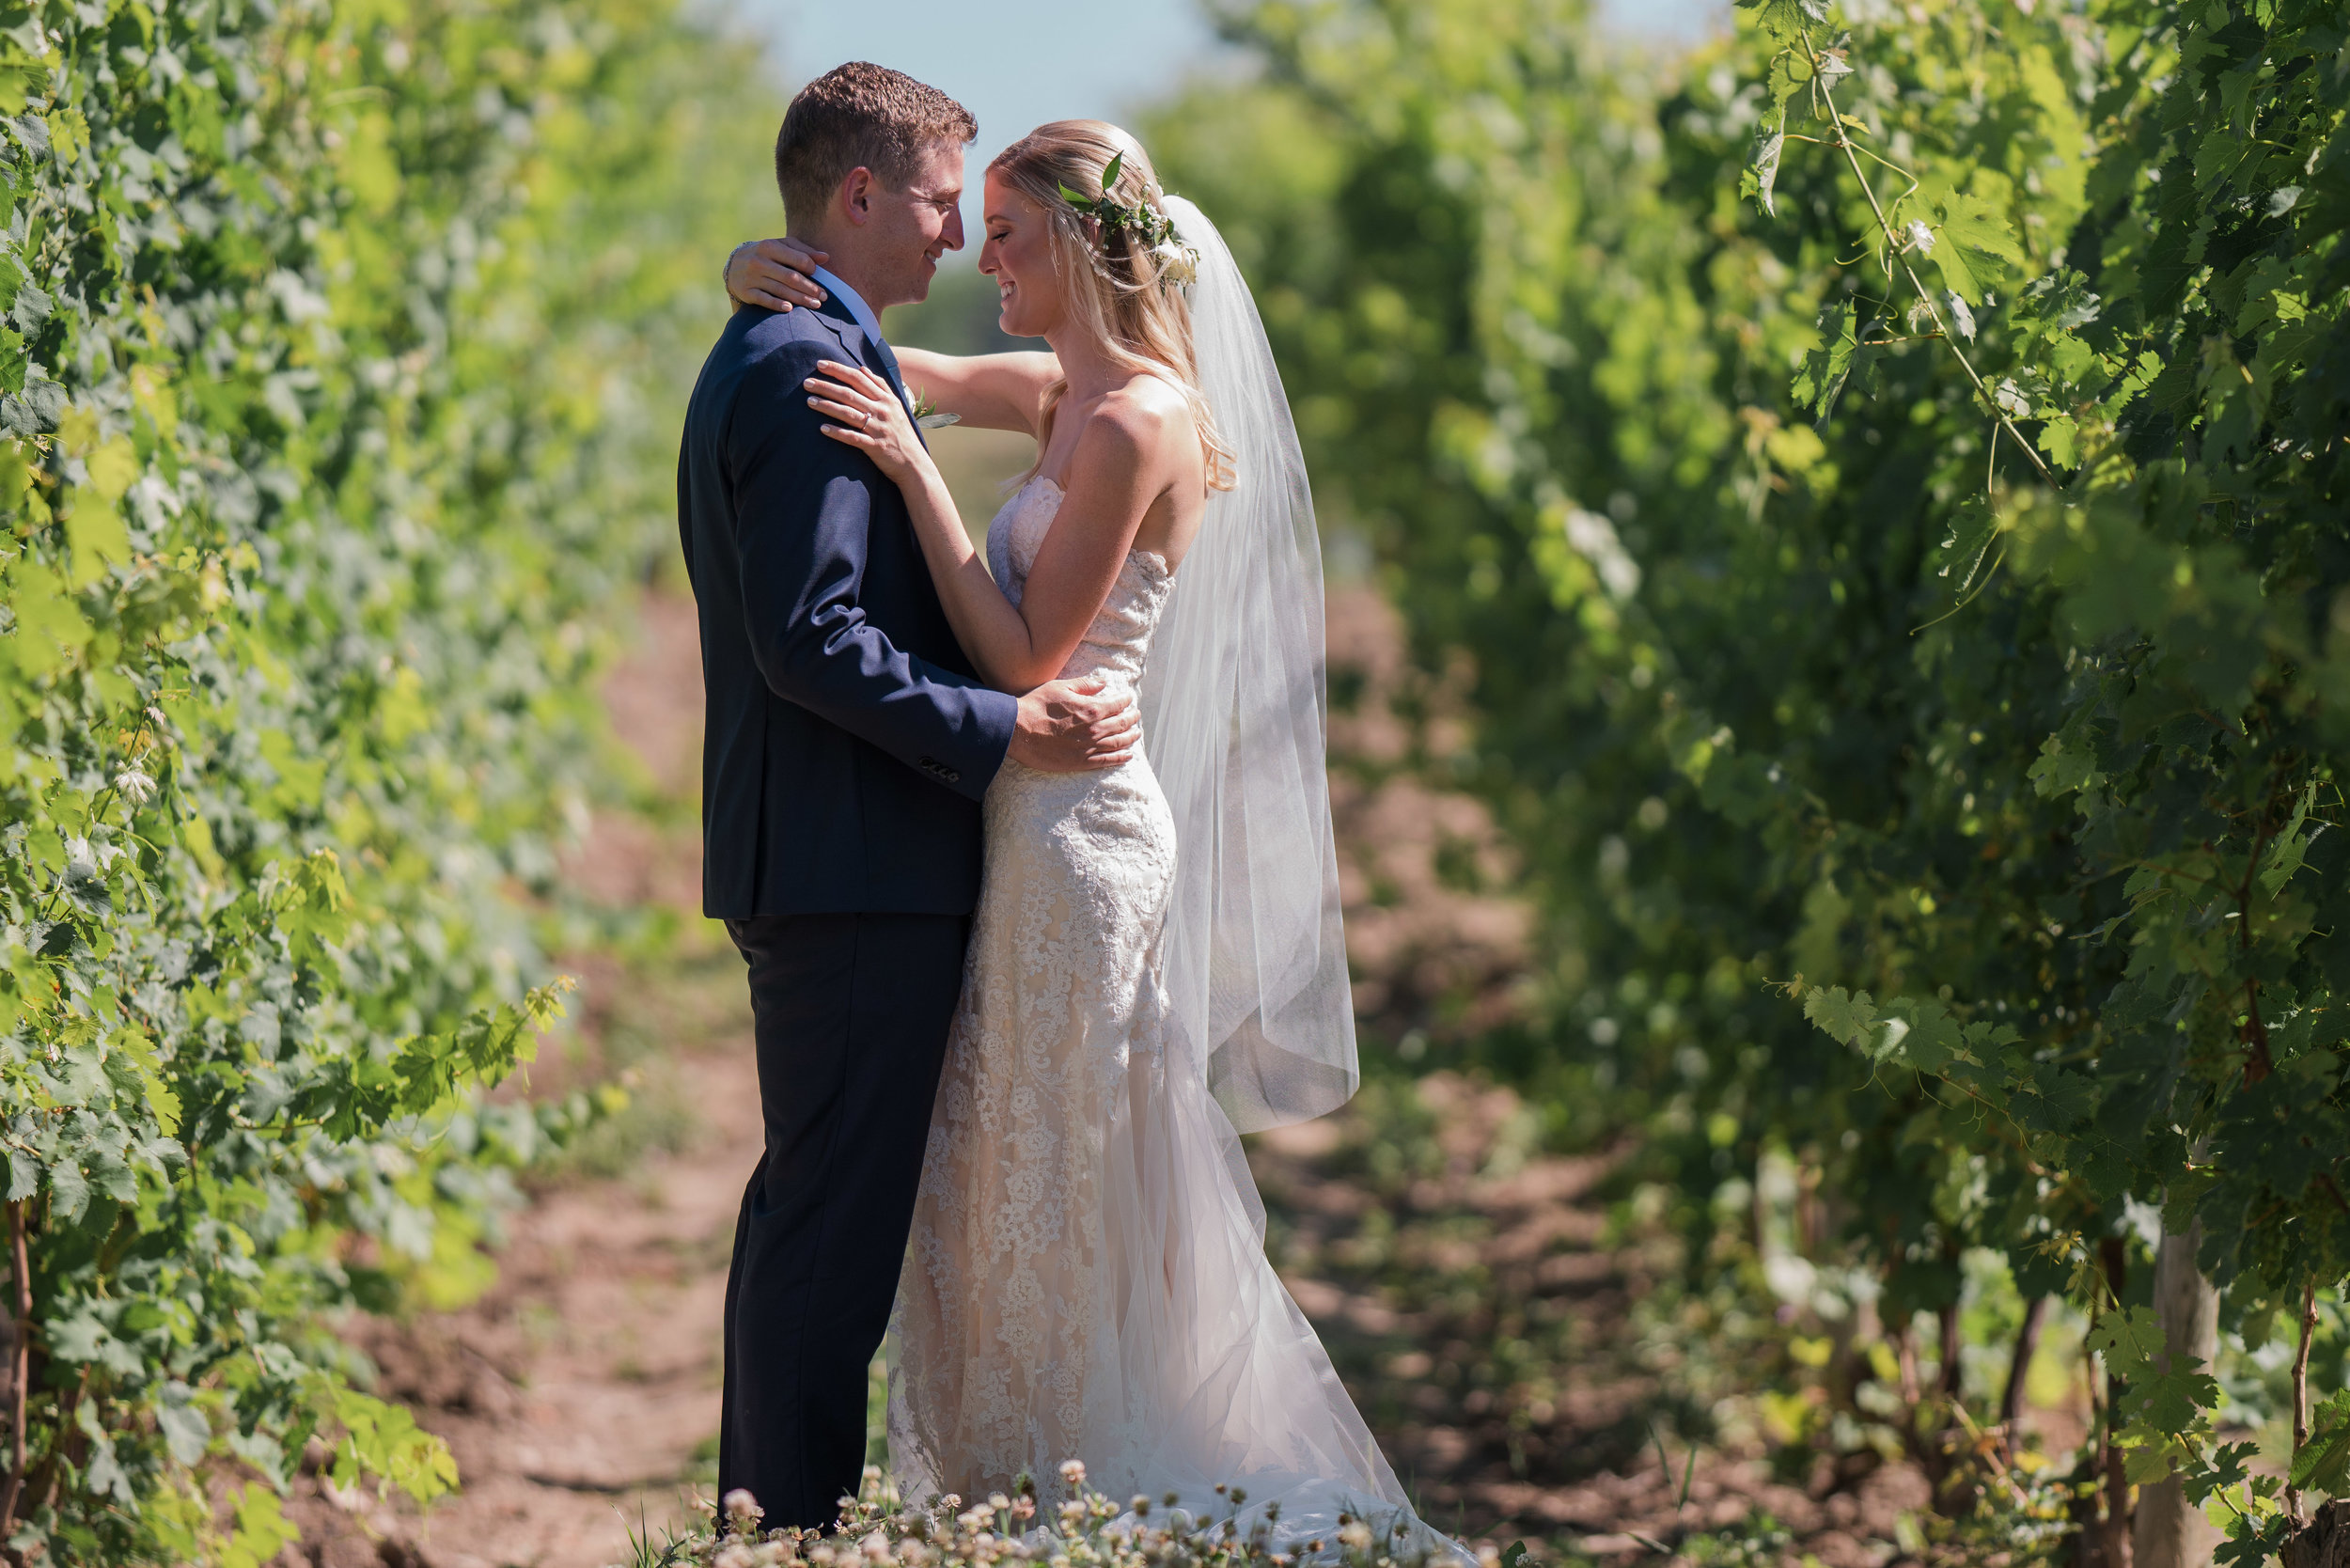 Wedding Photography at Wagner Vineyards Ginny Lee Cafe Finger Lakes by Stefan Ludwig Photography-42.jpg